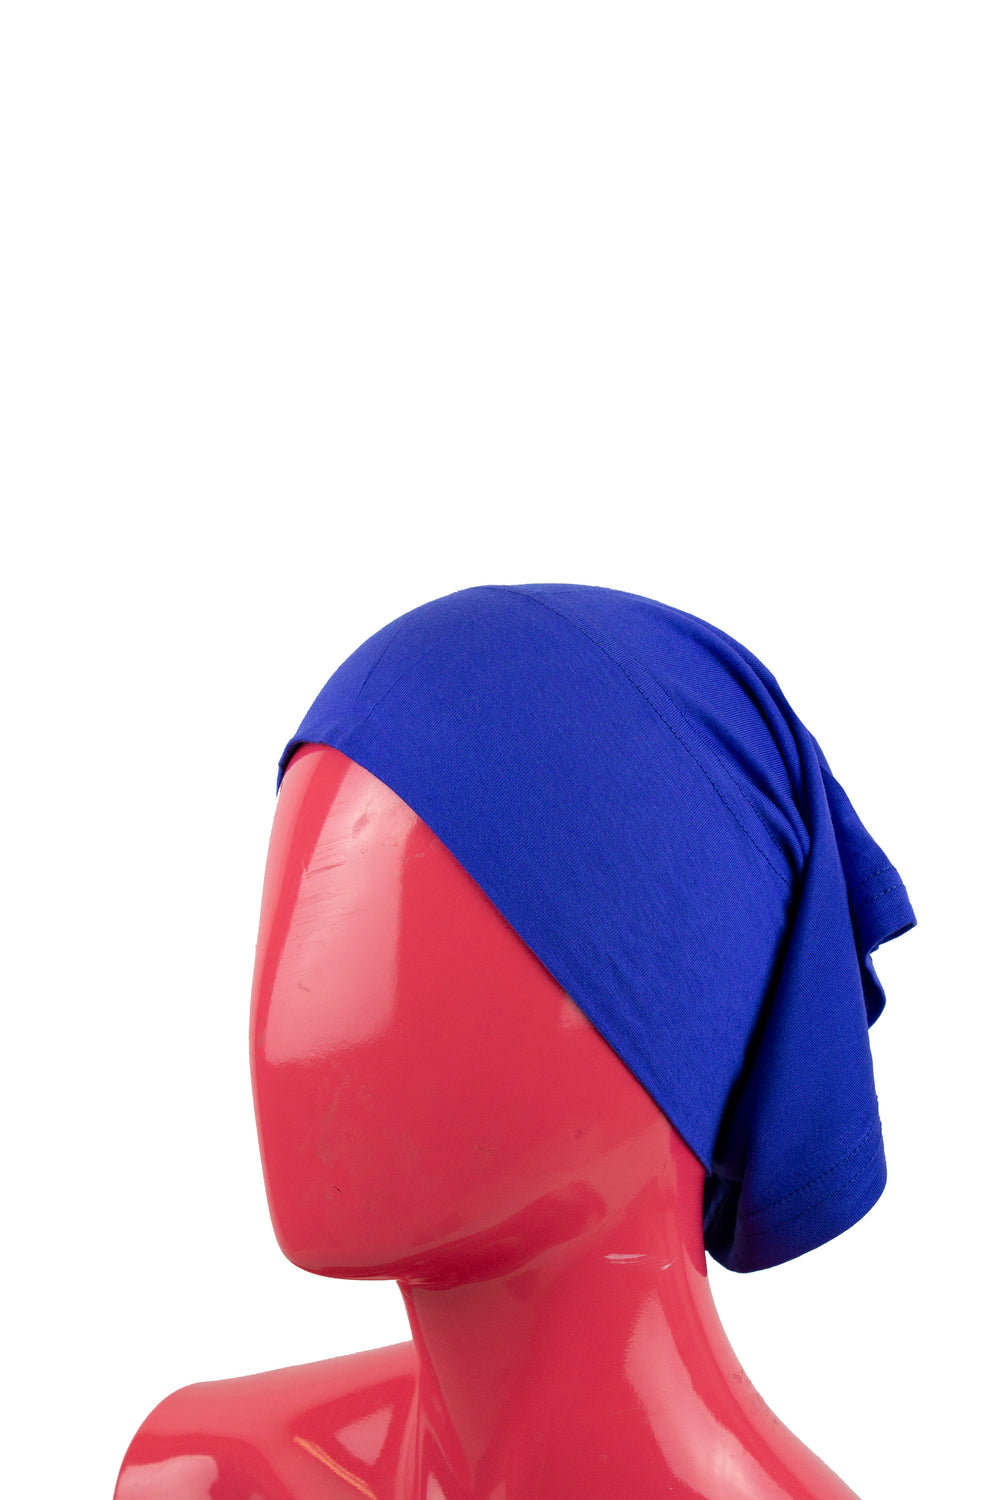 navy blue under scarf tube cap for hijab